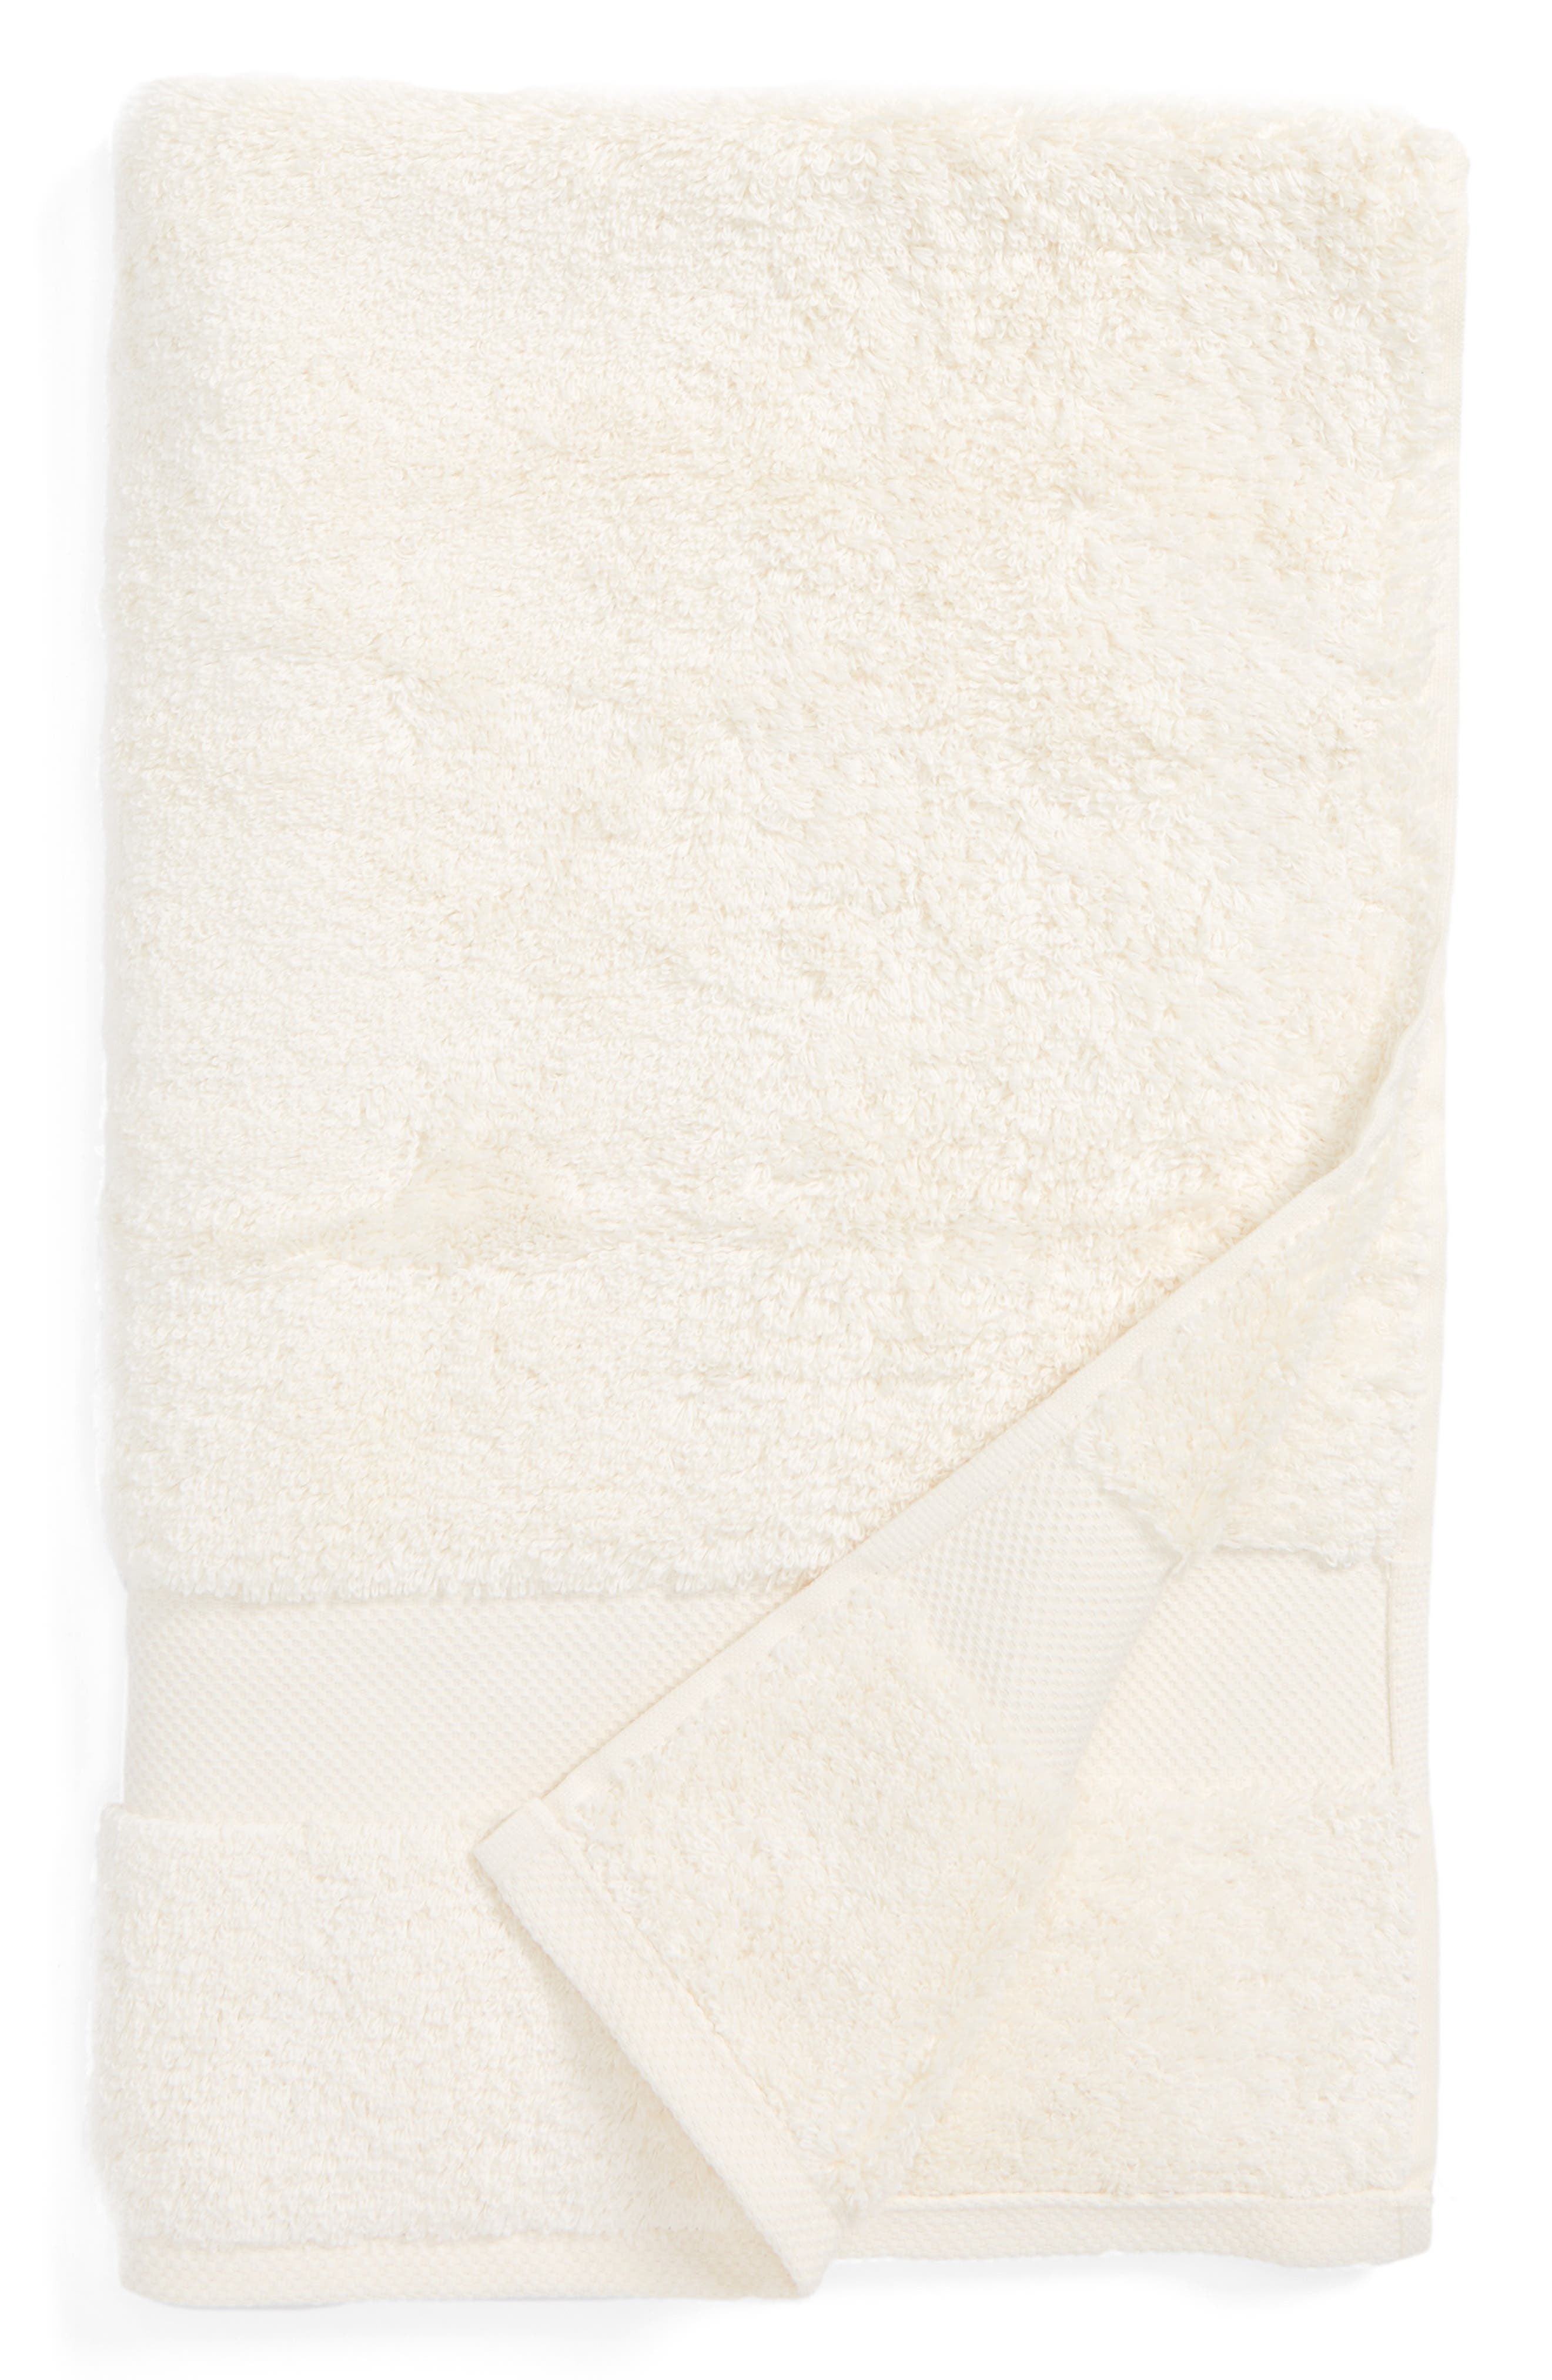 Lotus Hand Towel,                         Main,                         color, Ivory